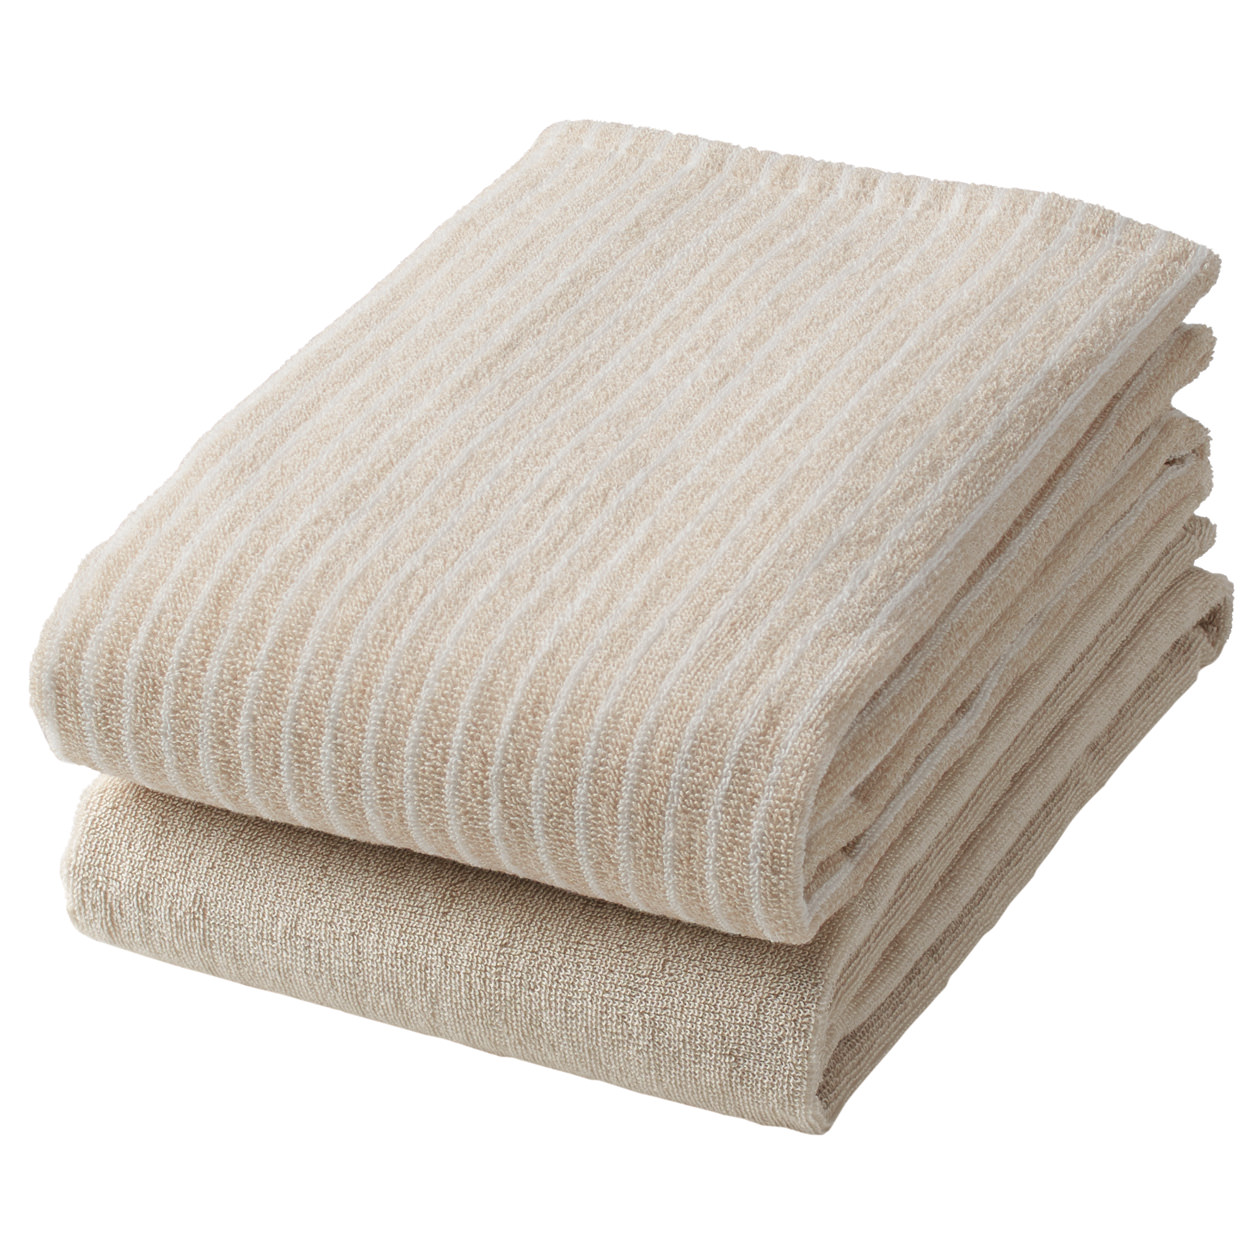 Organic Cotton Stripe Small Bath Towel Set 無印良品 Muji